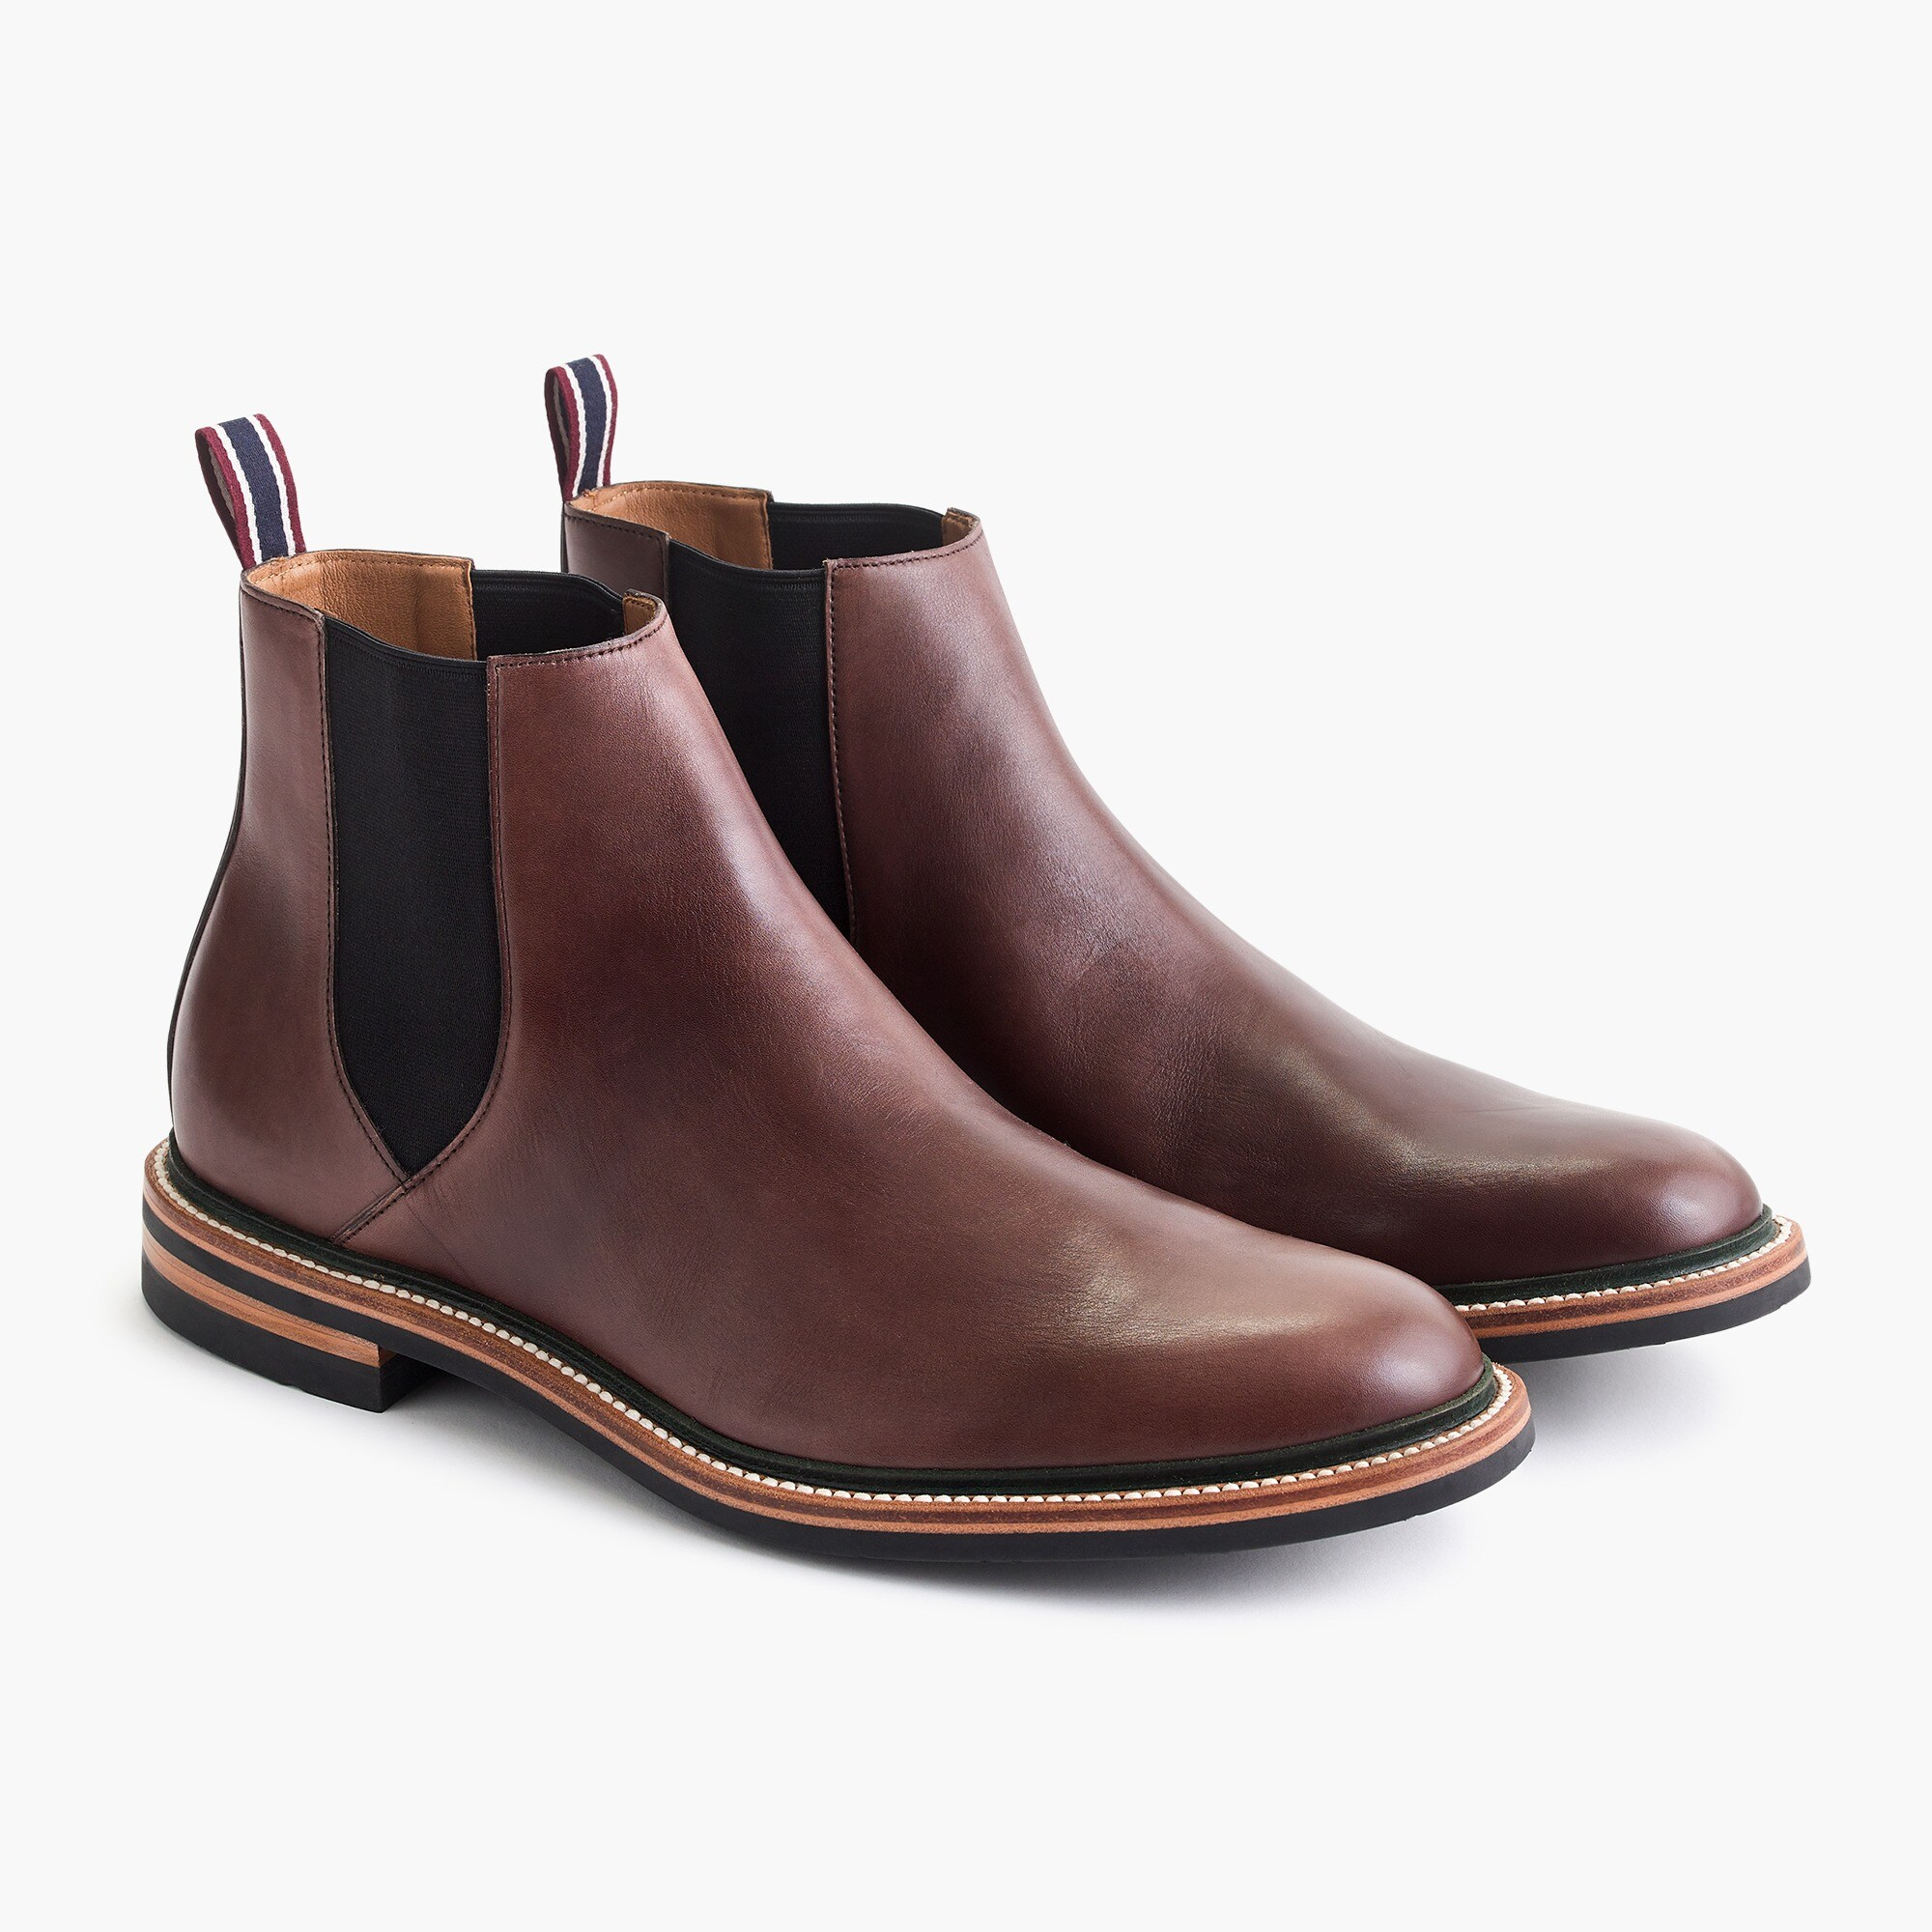 mens Oar Stripe Chelsea boots in Italian leather